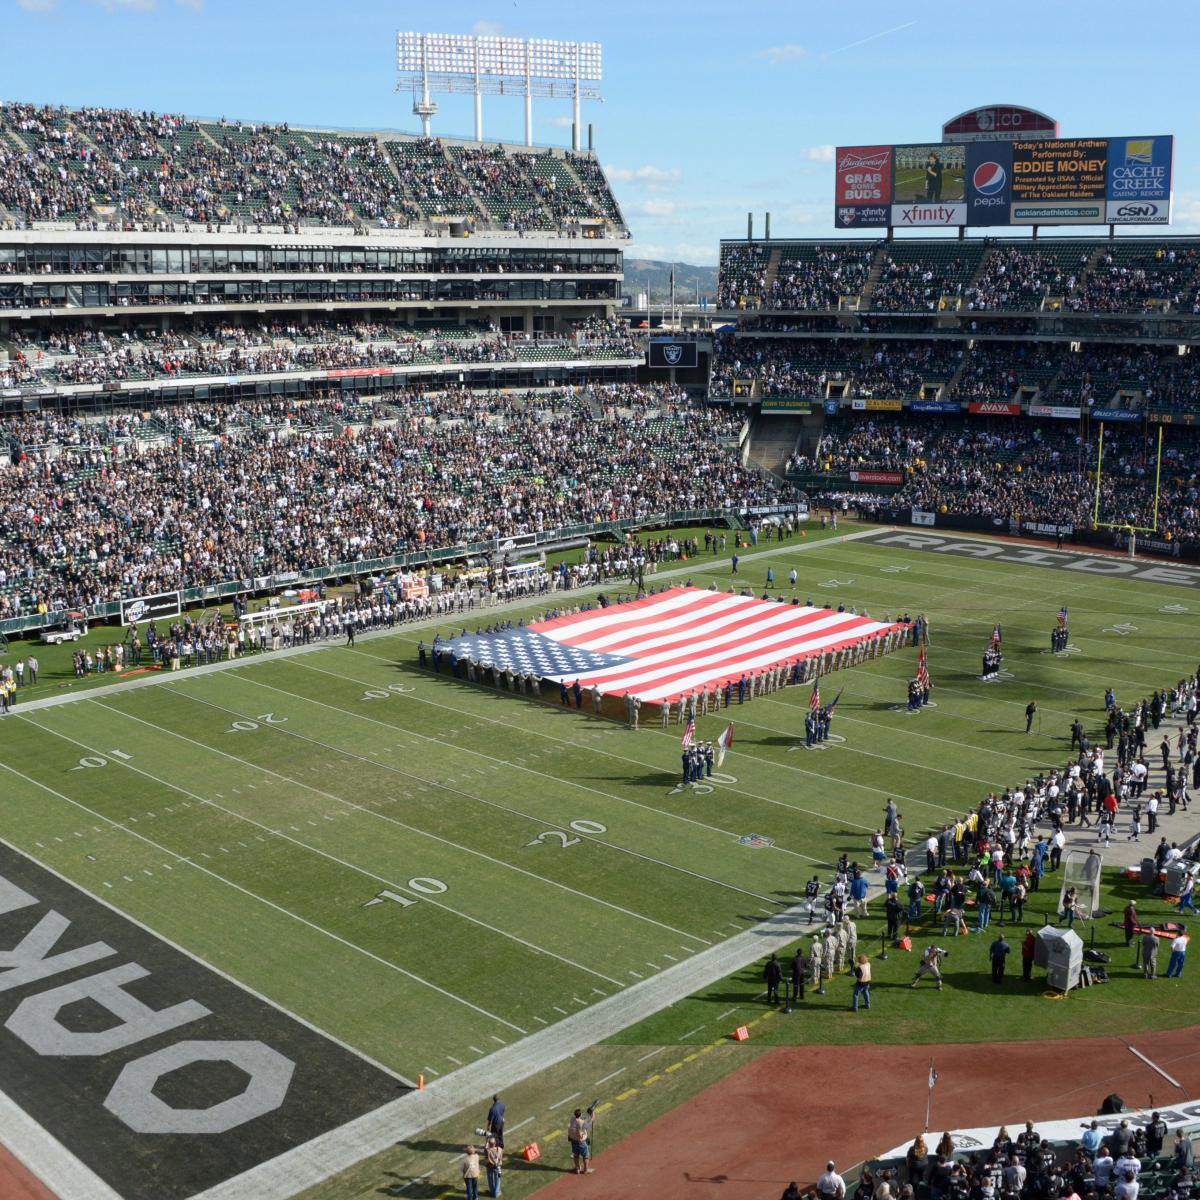 Raiders New Stadium: The Future Of The Raiders Is Tied To Getting A New Stadium